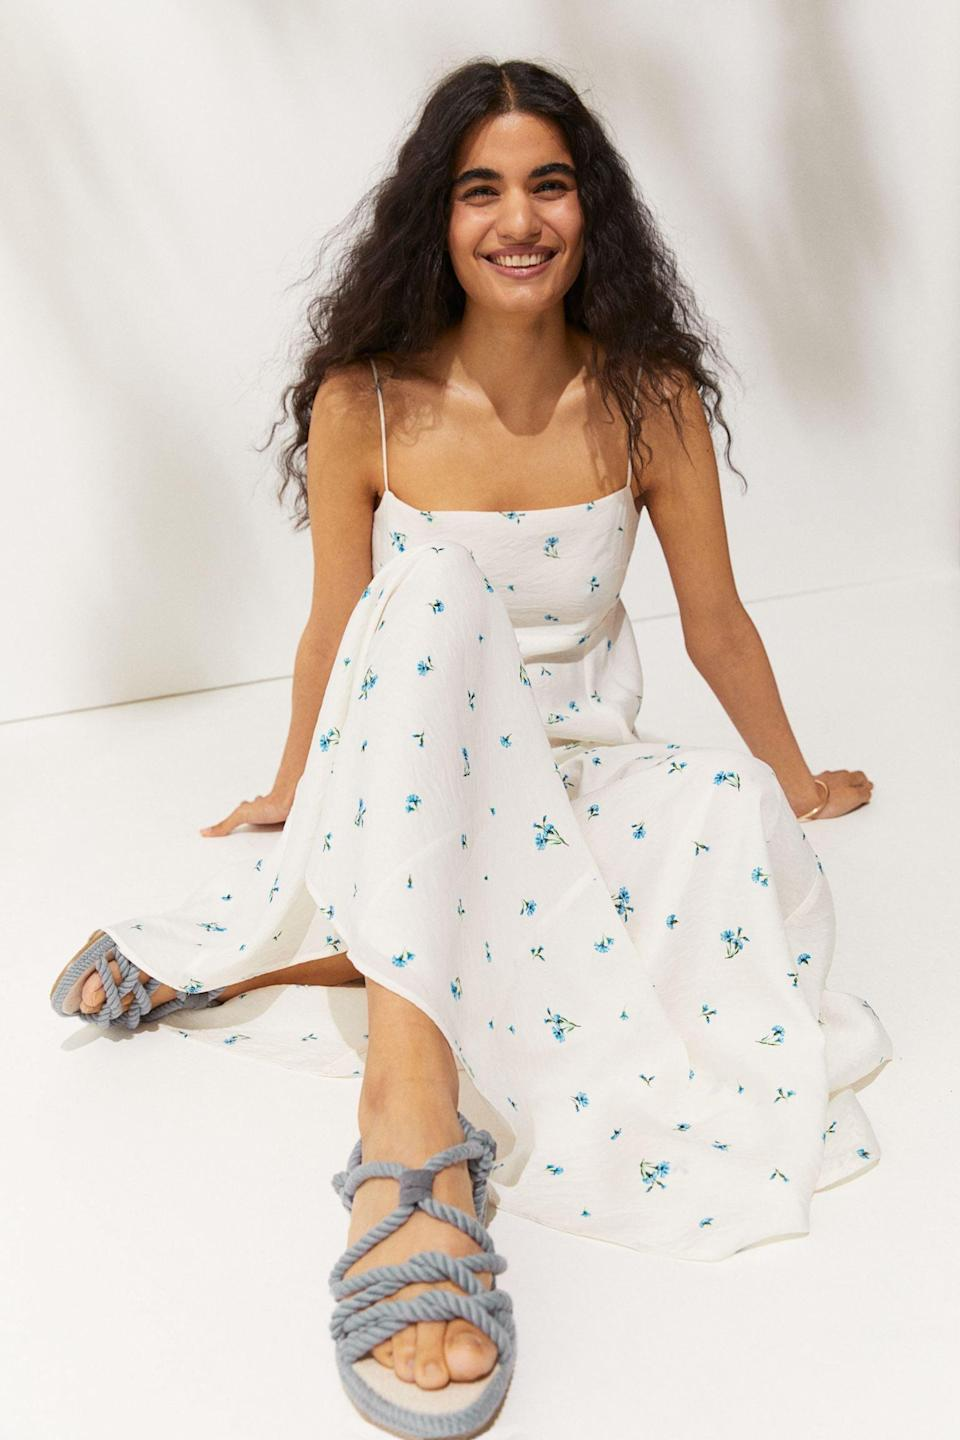 <p>This <span>H&amp;M Voluminous Maxi Dress</span> ($35) is waiting to be worn to the next rooftop party or park picnic. The flared skirt gives it an airy silhouette, while the print makes it summery and fun.</p>